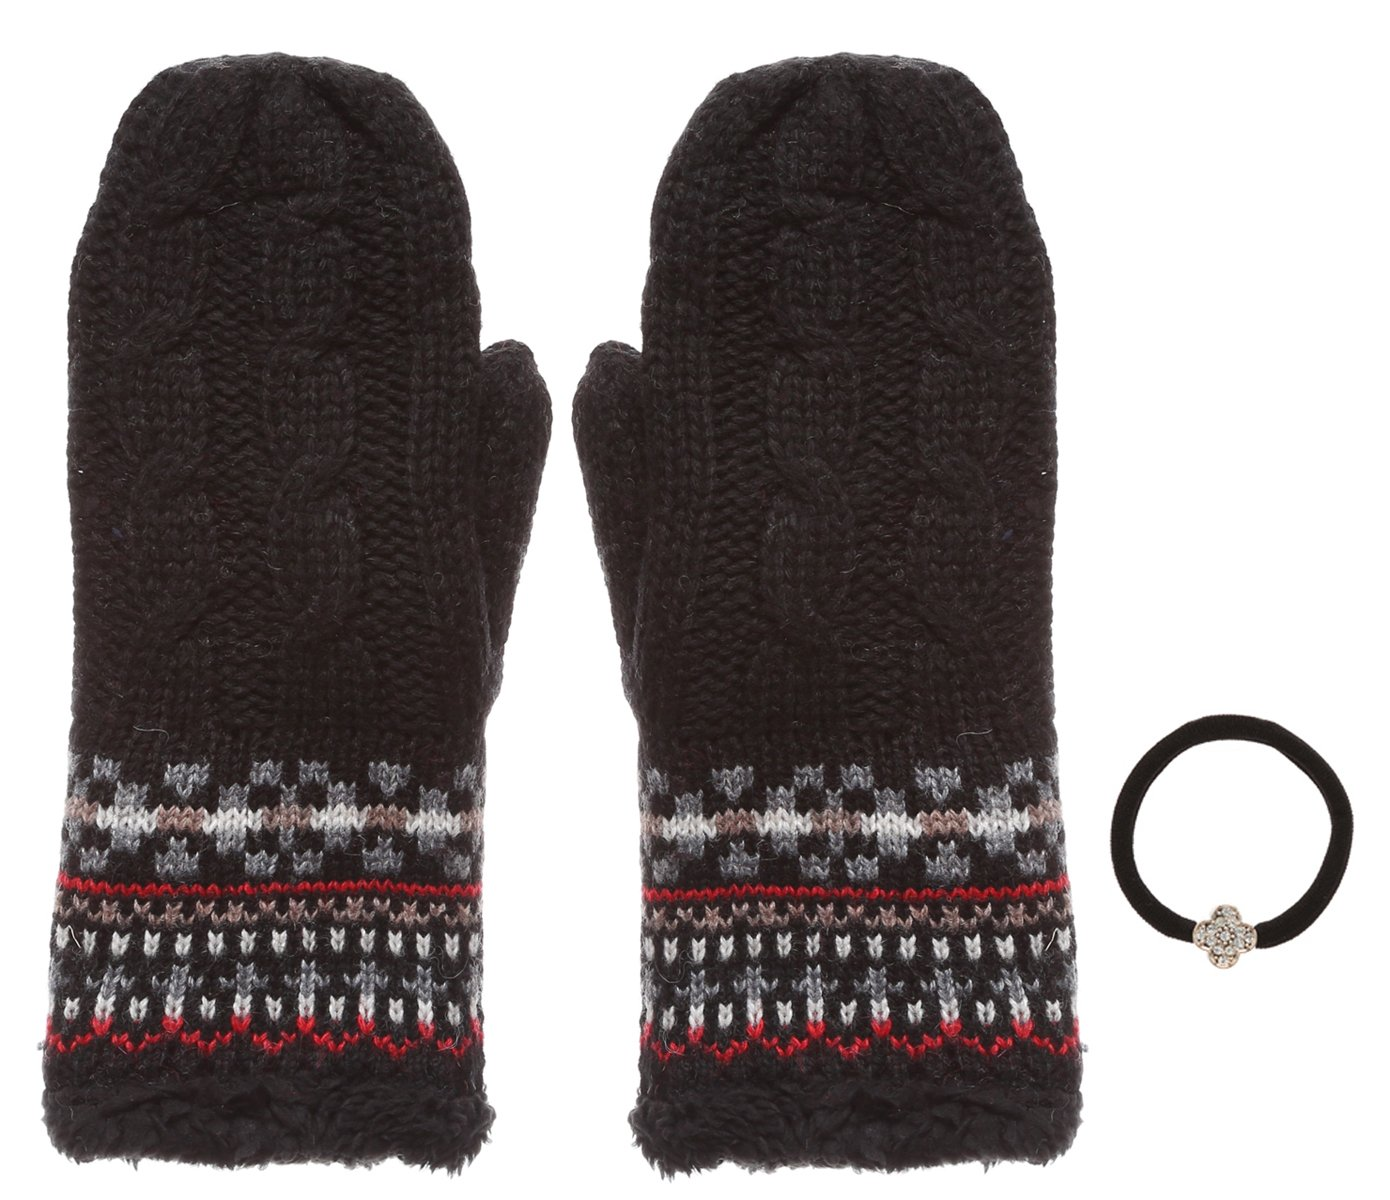 Women's Winter Wool Blend Cable Knitted Mitten Plush Lining Gloves with Hair Tie.(413,Black)